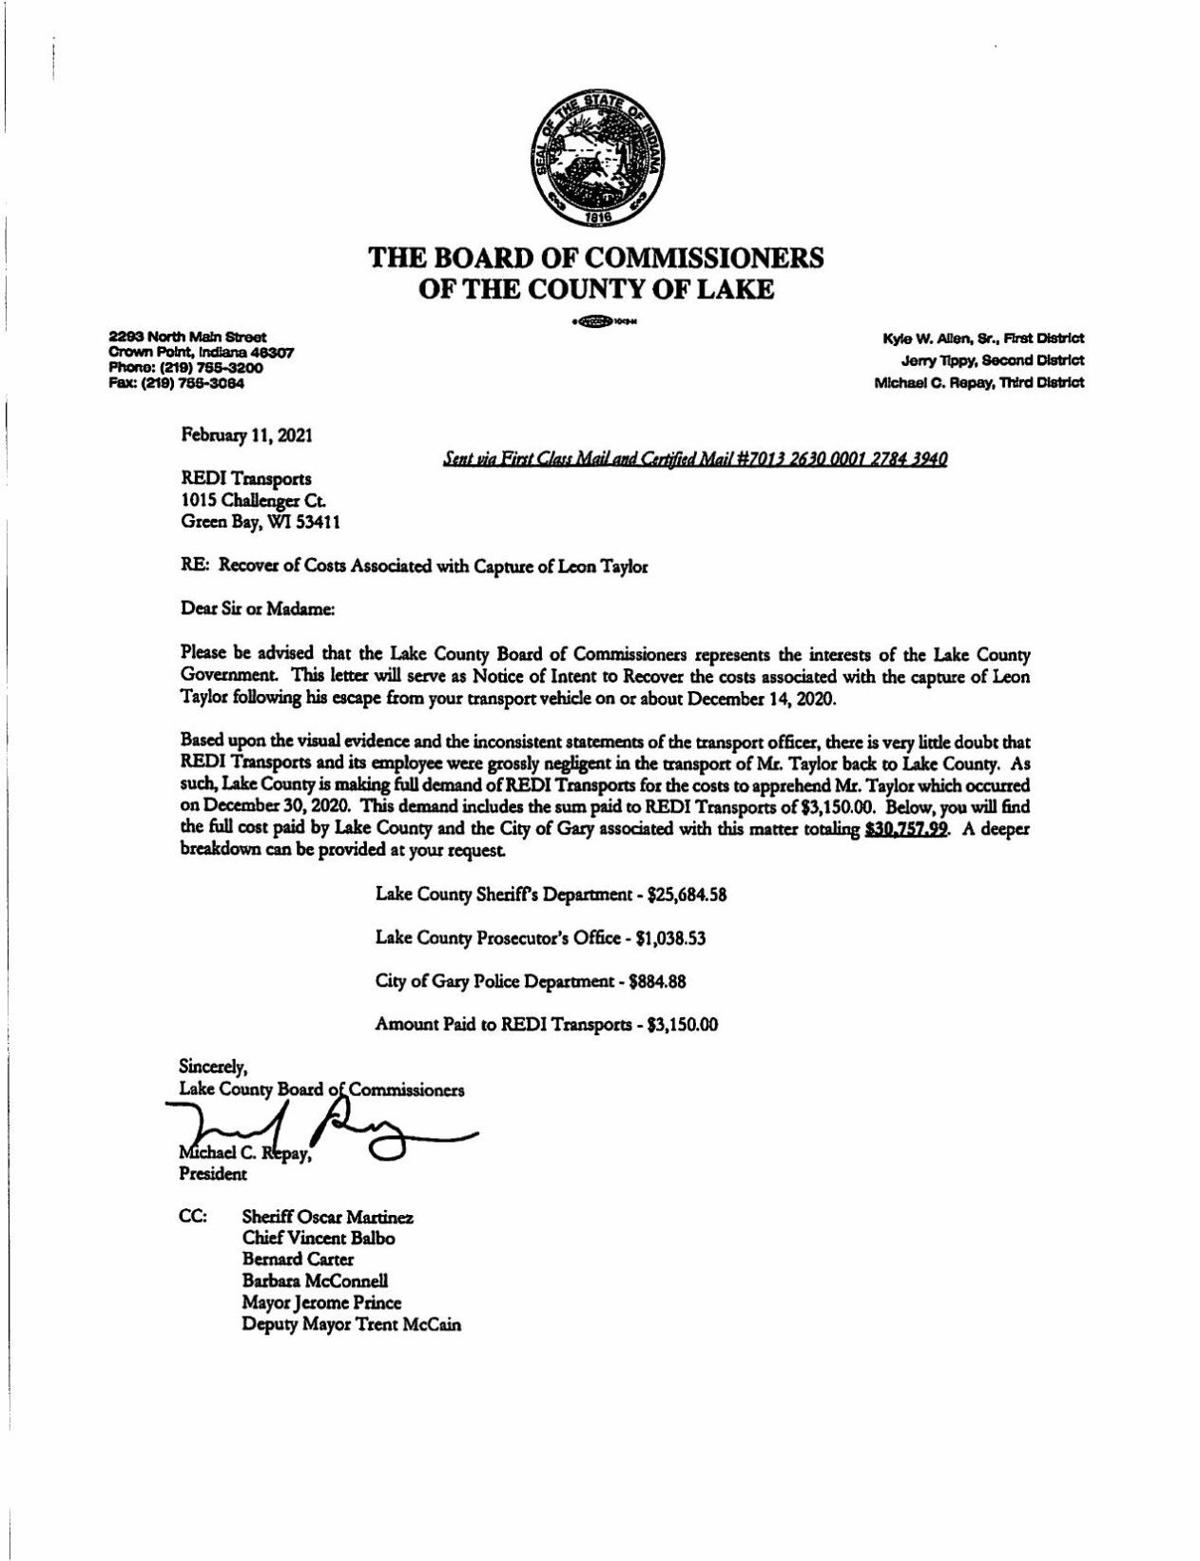 Lake County repayment demand letter to REDI Transports